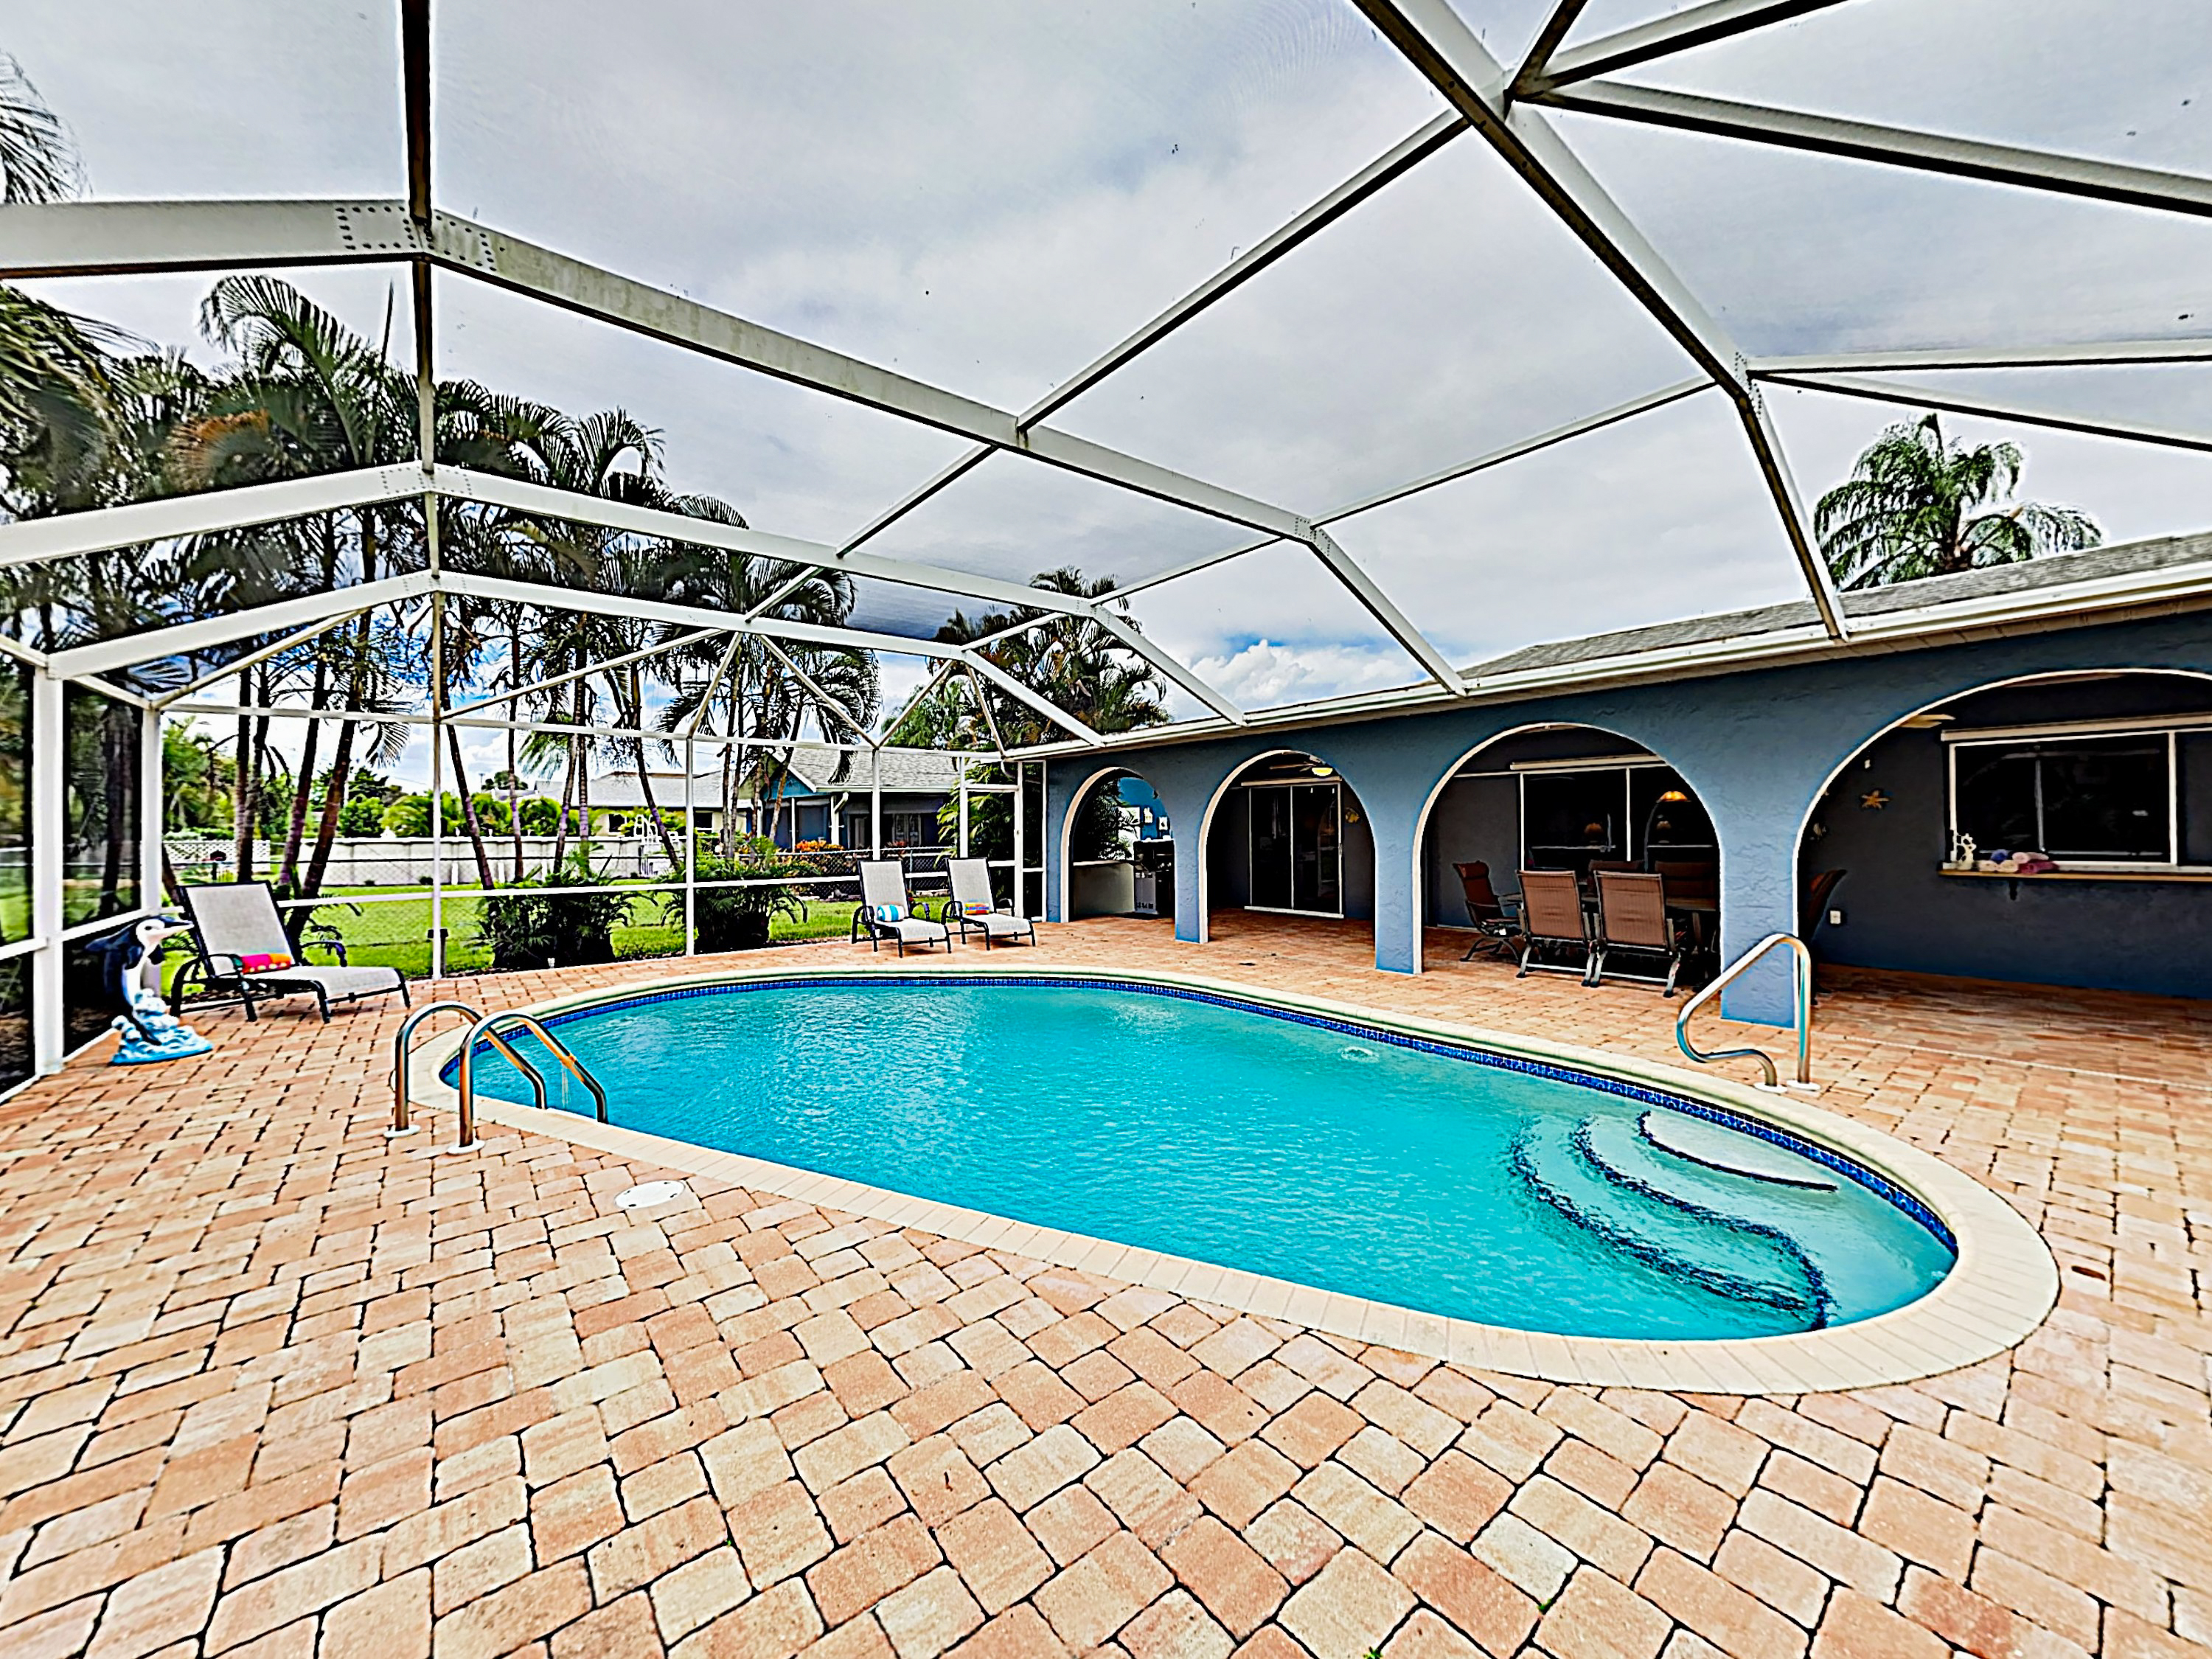 Cape Coral FL Vacation Rental Welcome to Cape